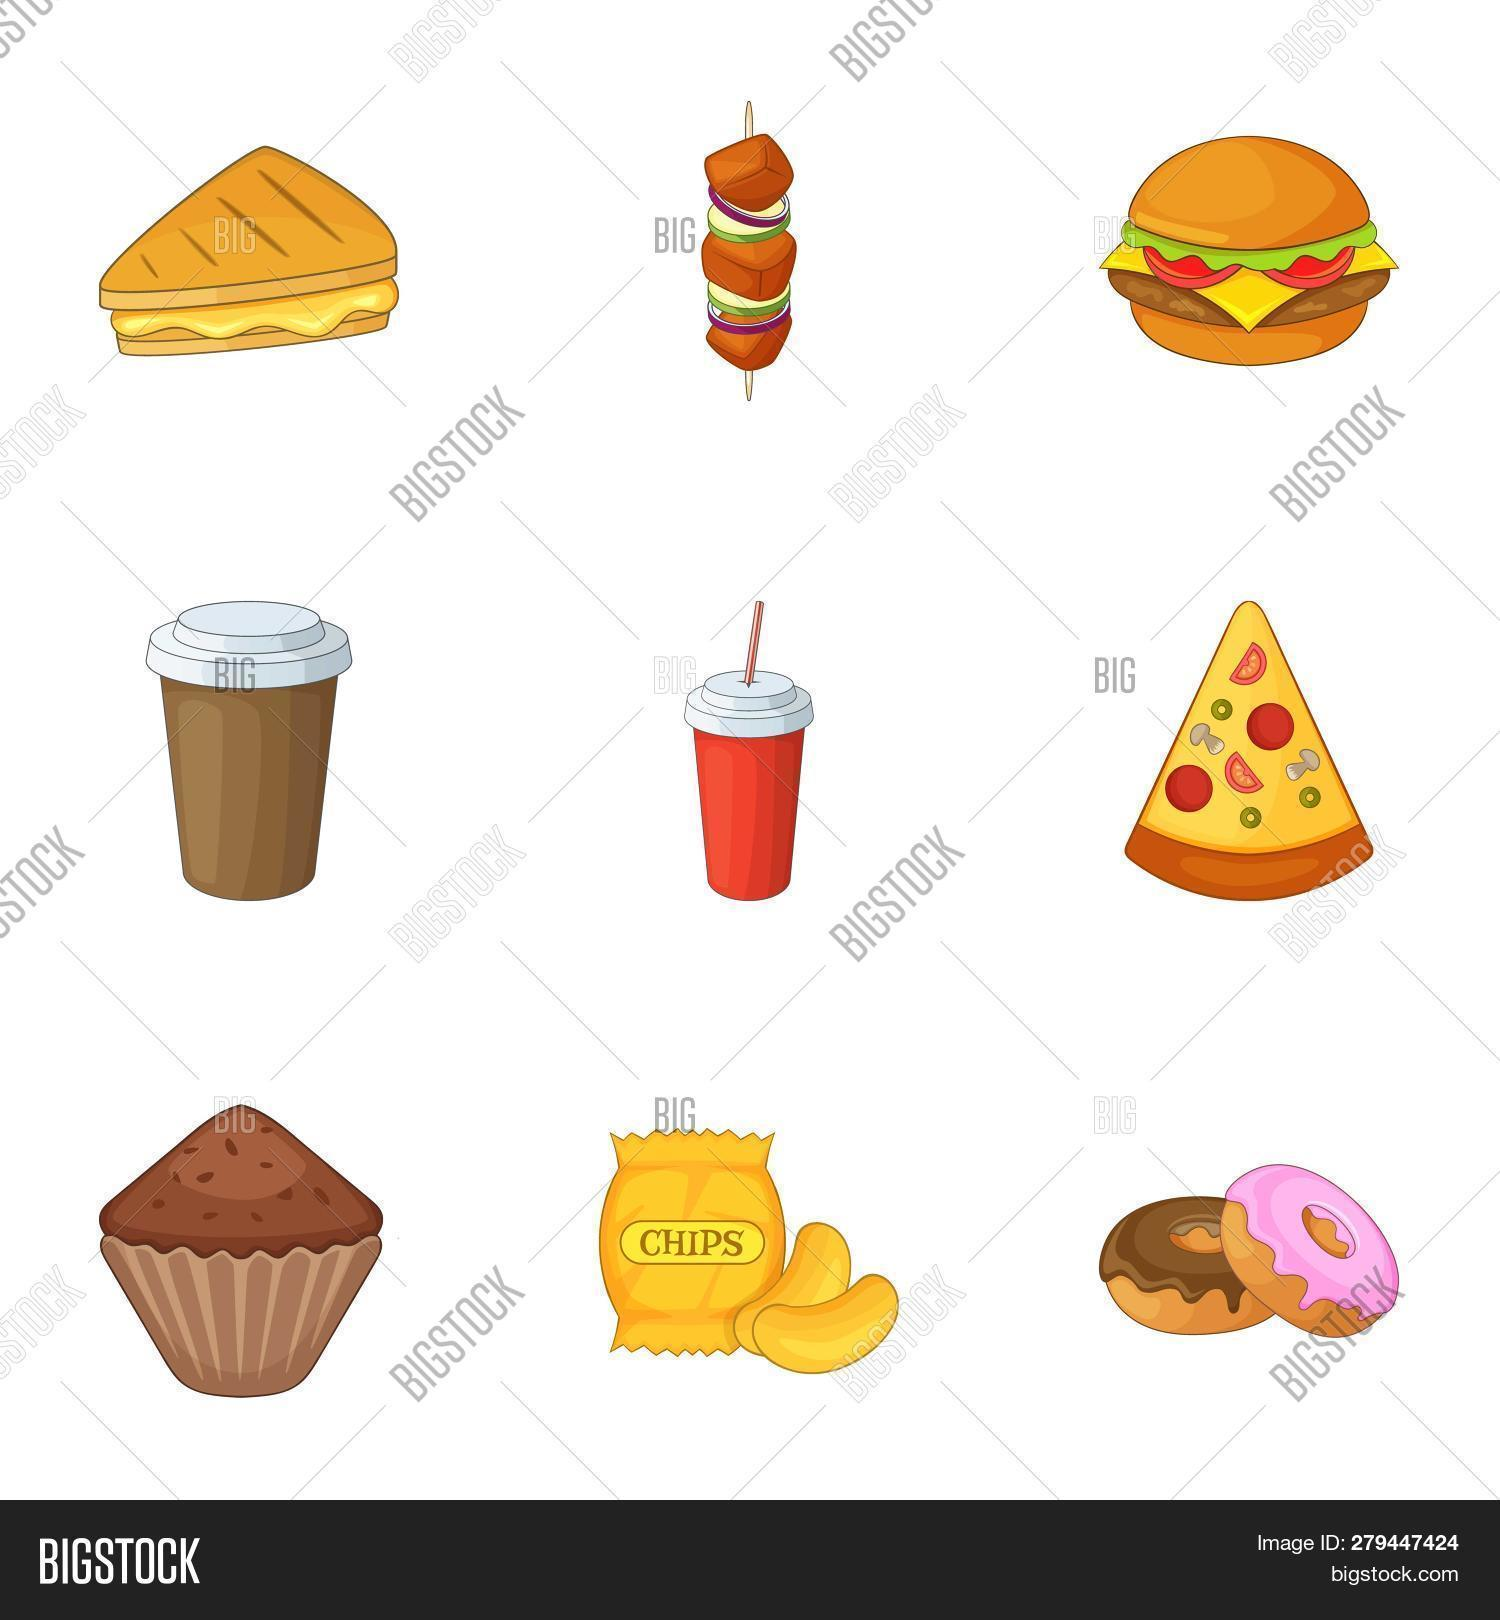 Harmful Fast Food Image Photo Free Trial Bigstock